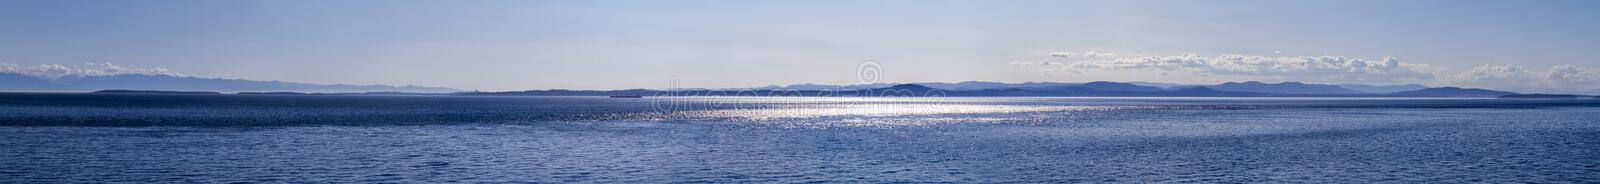 Banner of sea and sky royalty free stock images